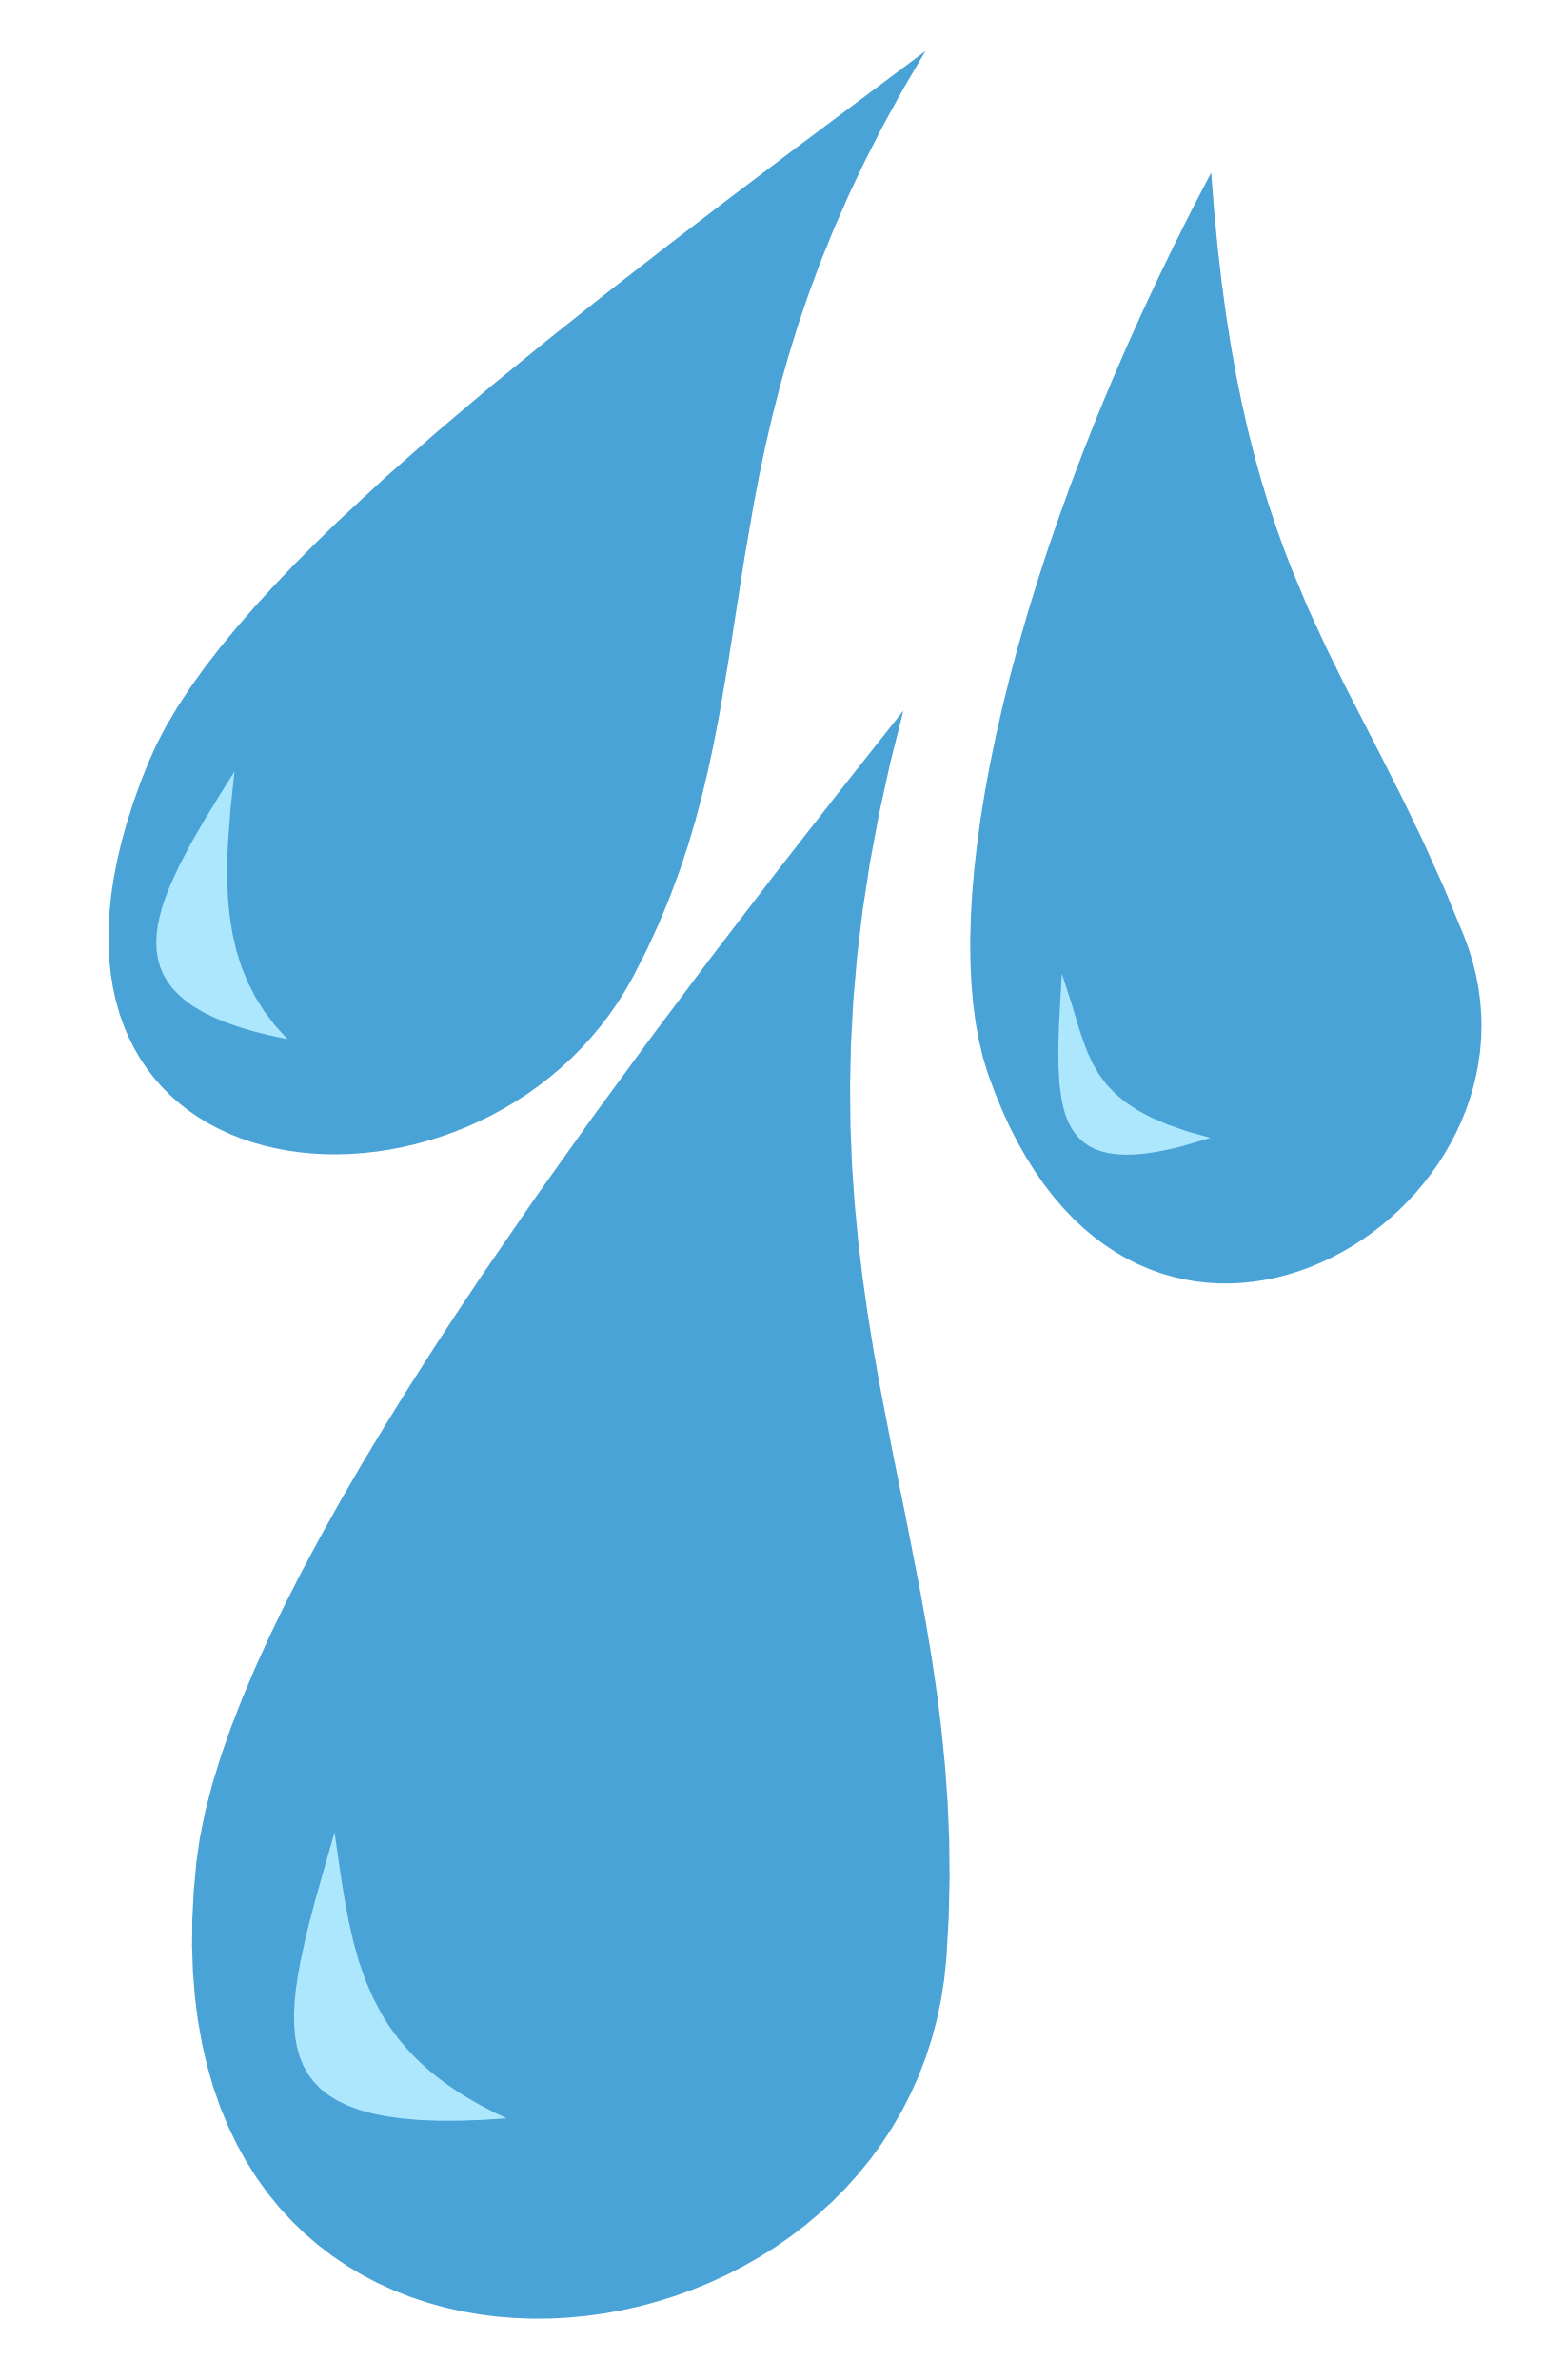 Drops vector. Collection of free dropt